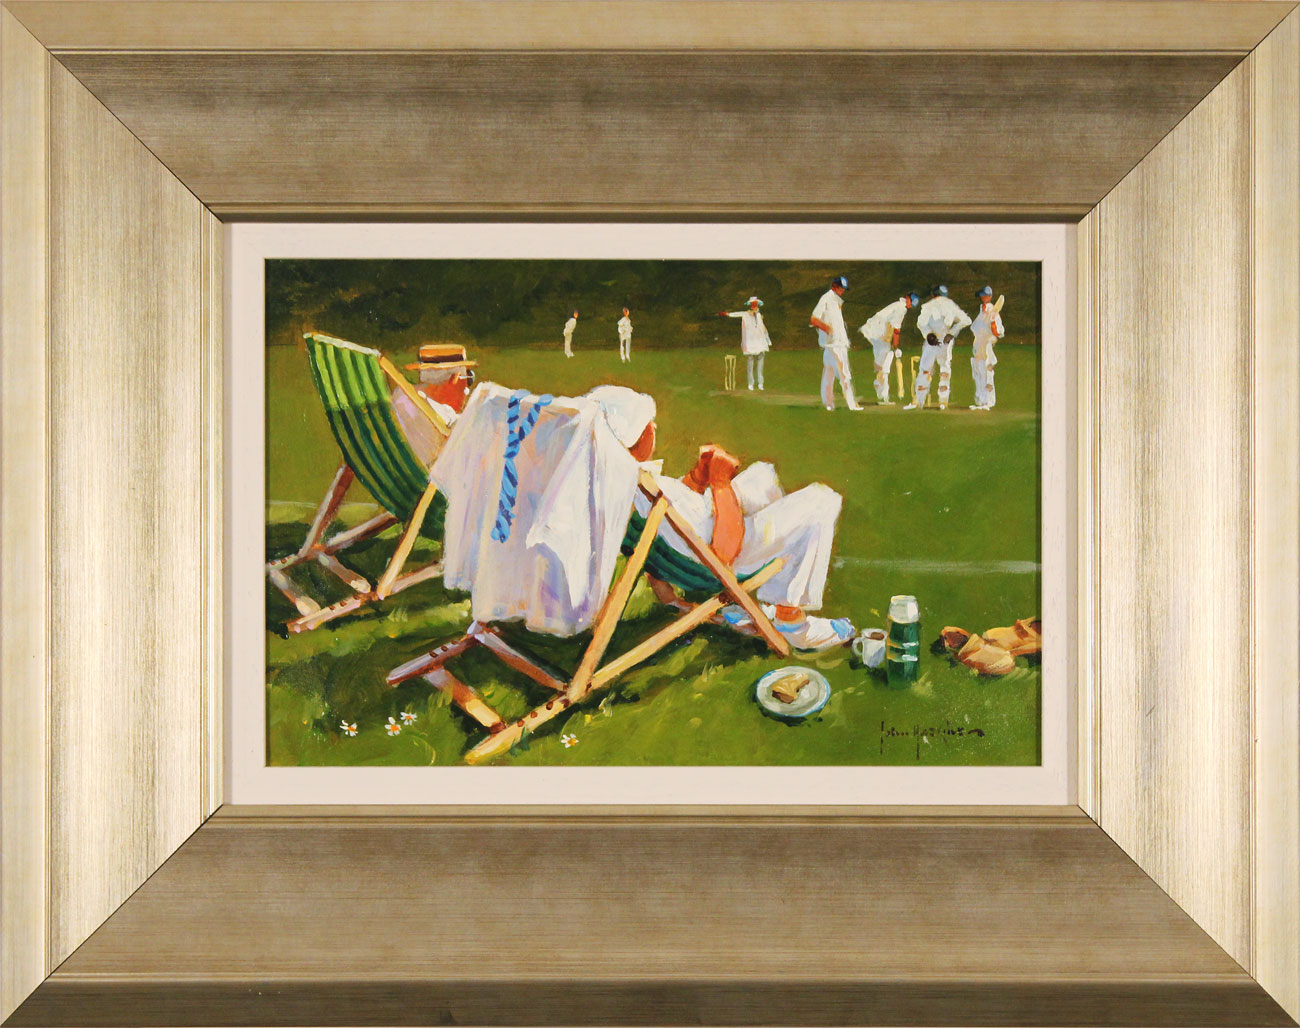 John Haskins, Original oil painting on panel, The Umpire's Decision. Click to enlarge